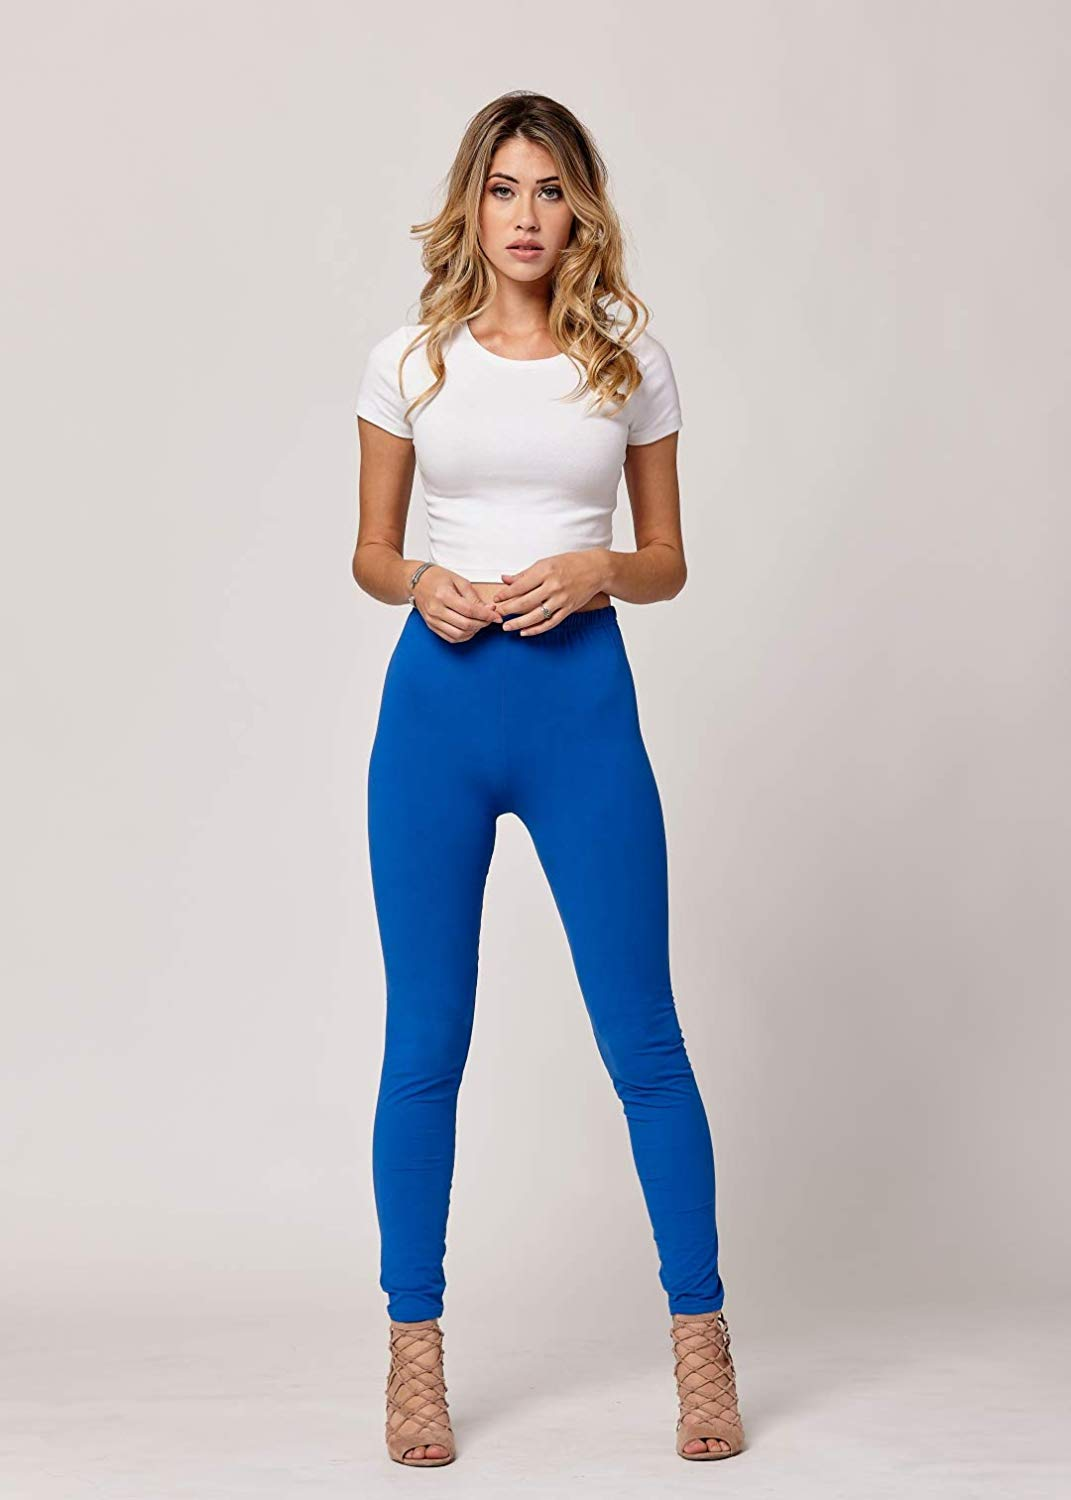 10 Pieces  Premium Ultra High Waisted For Women - - Many Colors2019 CoolMax  Bamboo Fiber